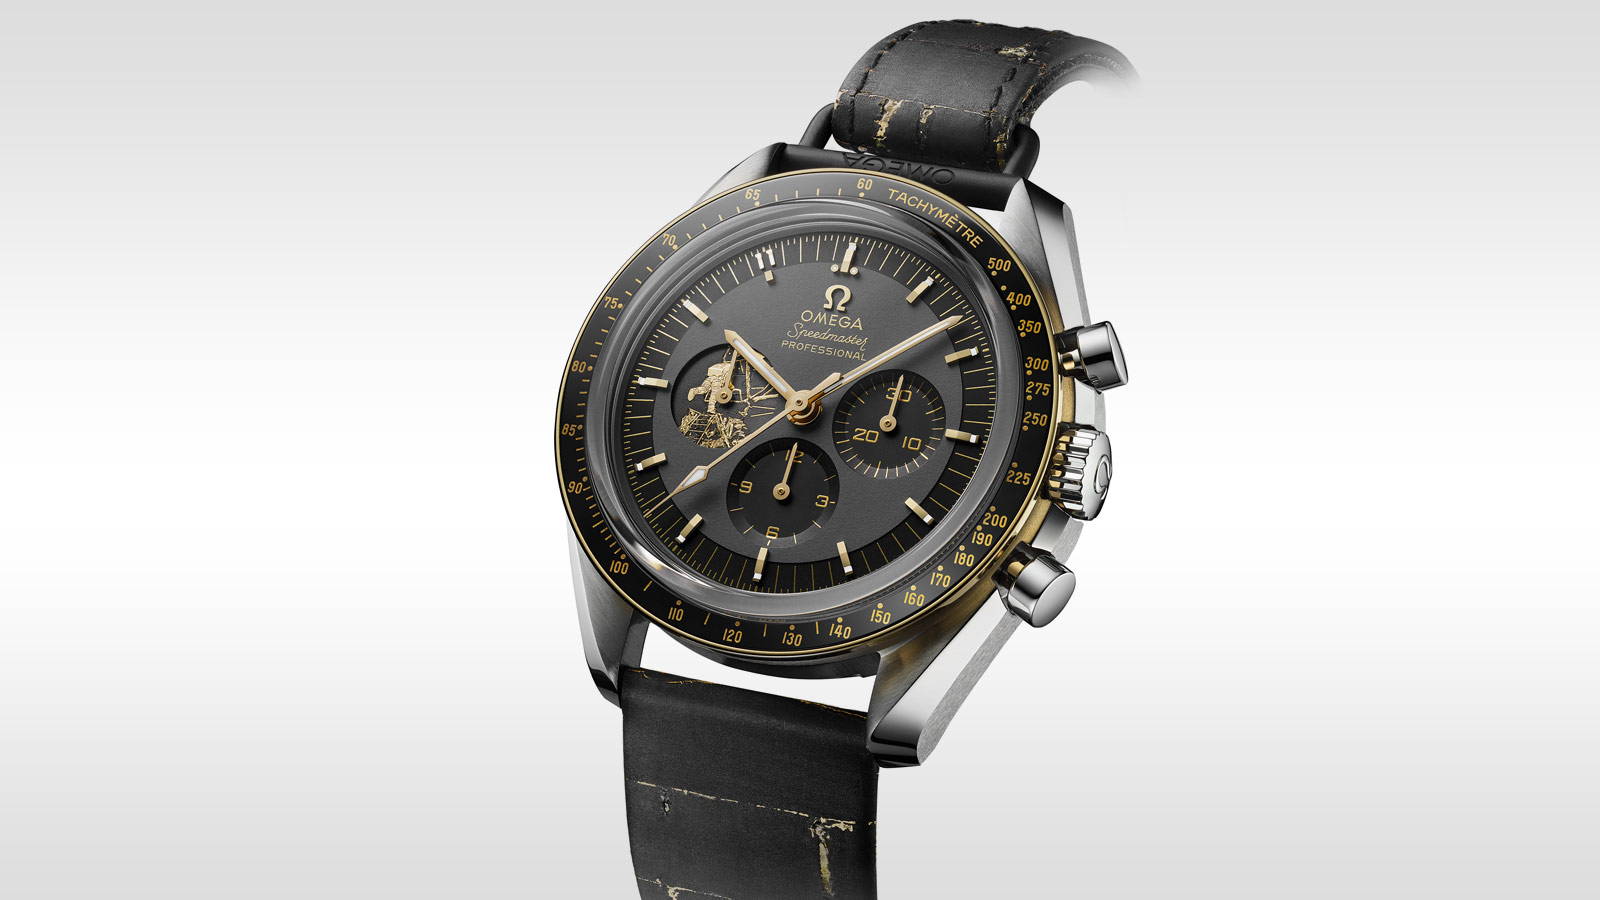 Speedmaster Moonwatch Moonwatch Anniversary Limited Series - 310.20.42.50.01.001 - View 1